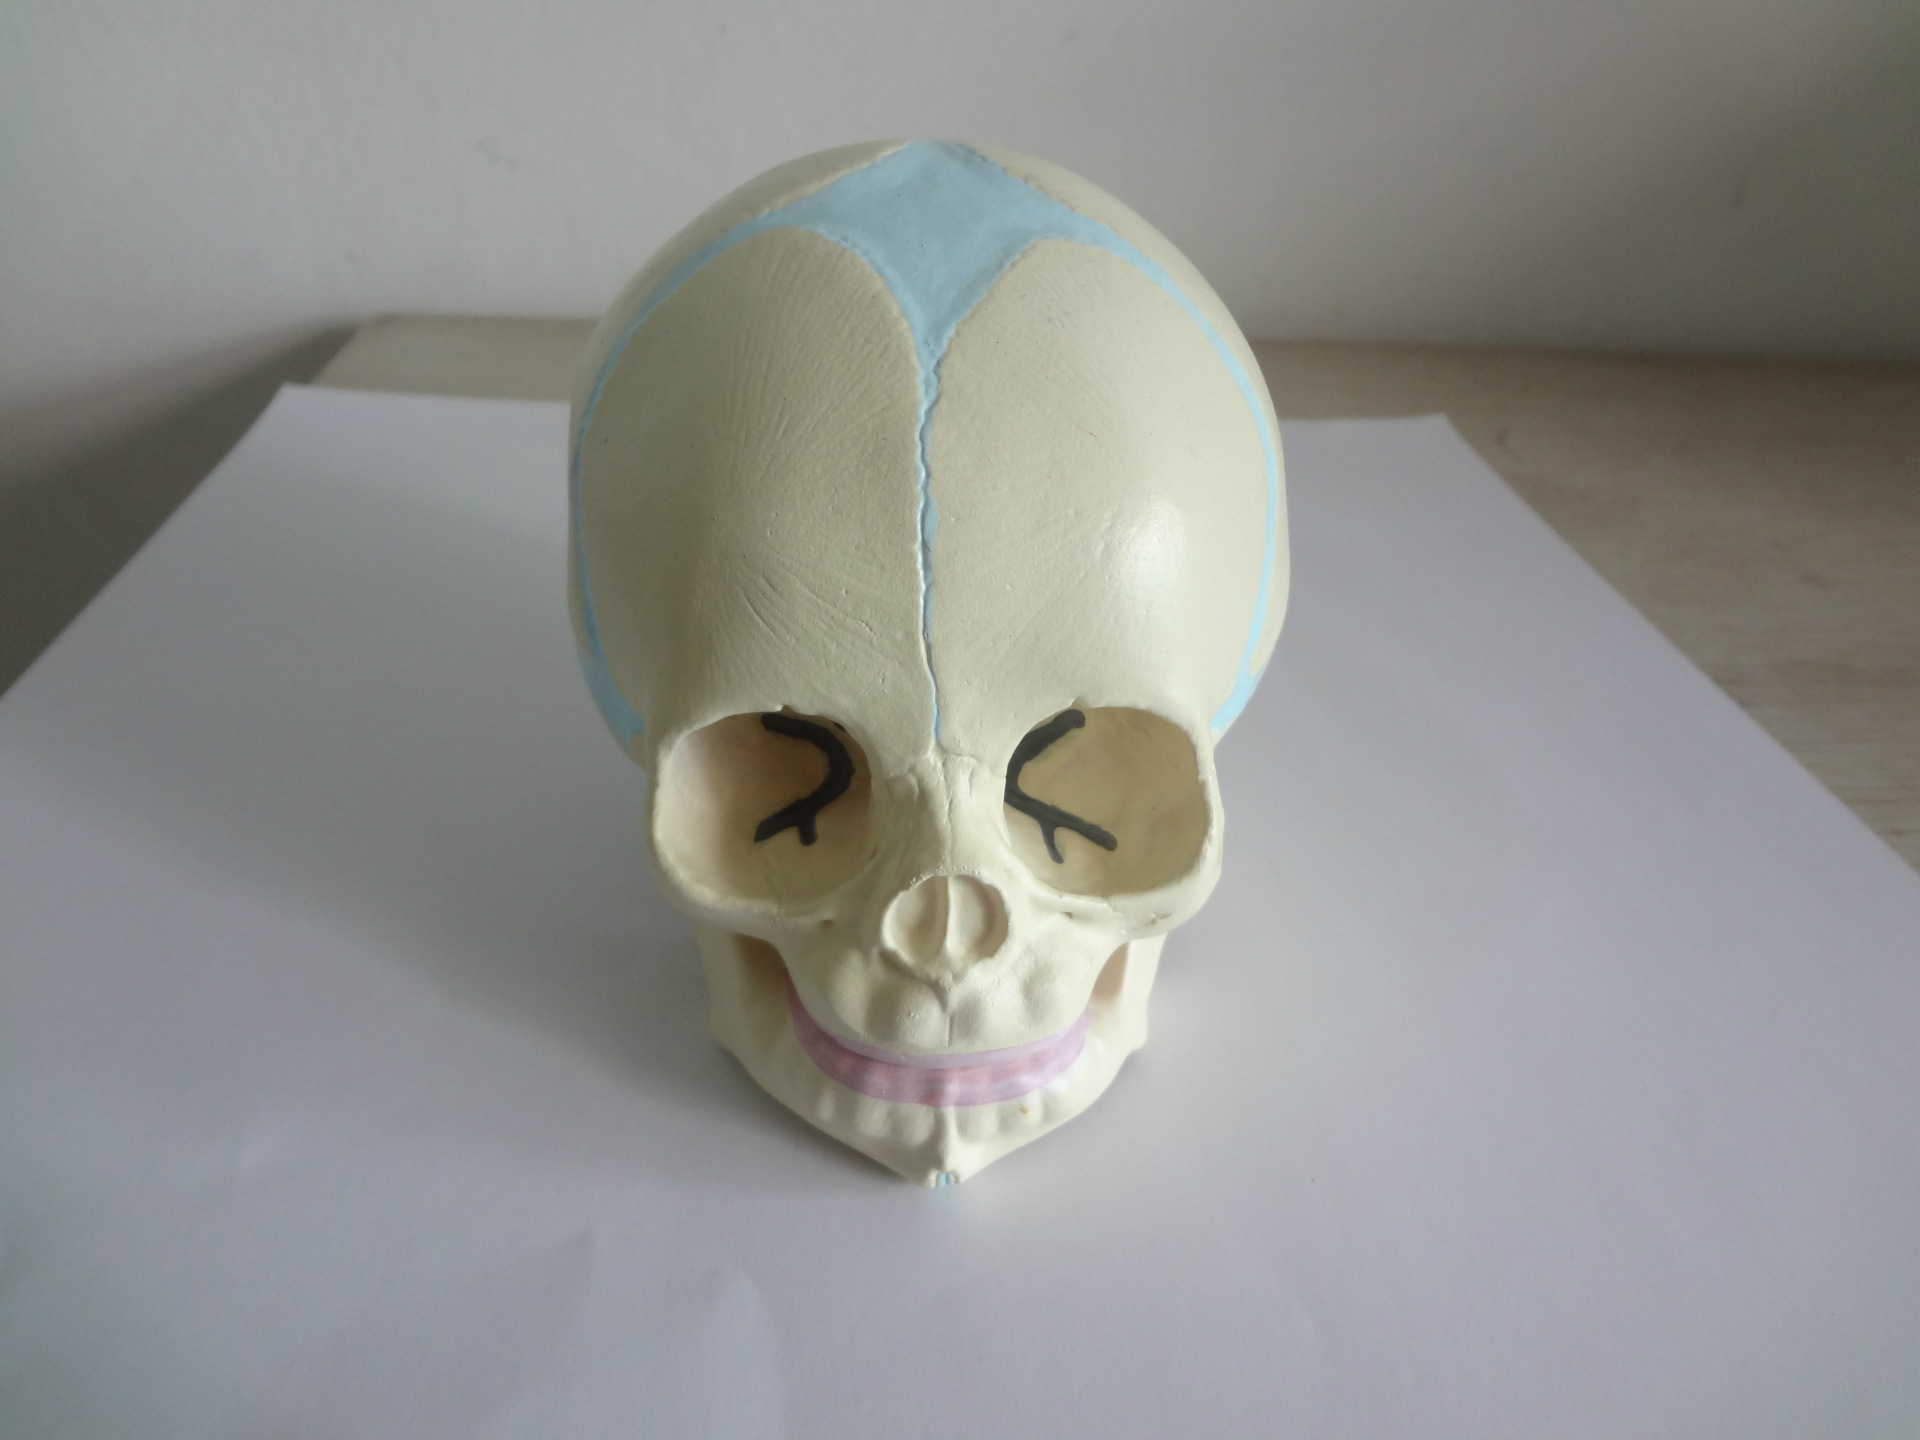 1:1 Human Fetal Baby Infant Anatomical Skull For Art Sketch High Simulation Teaching Use For  Human Anatomy Model